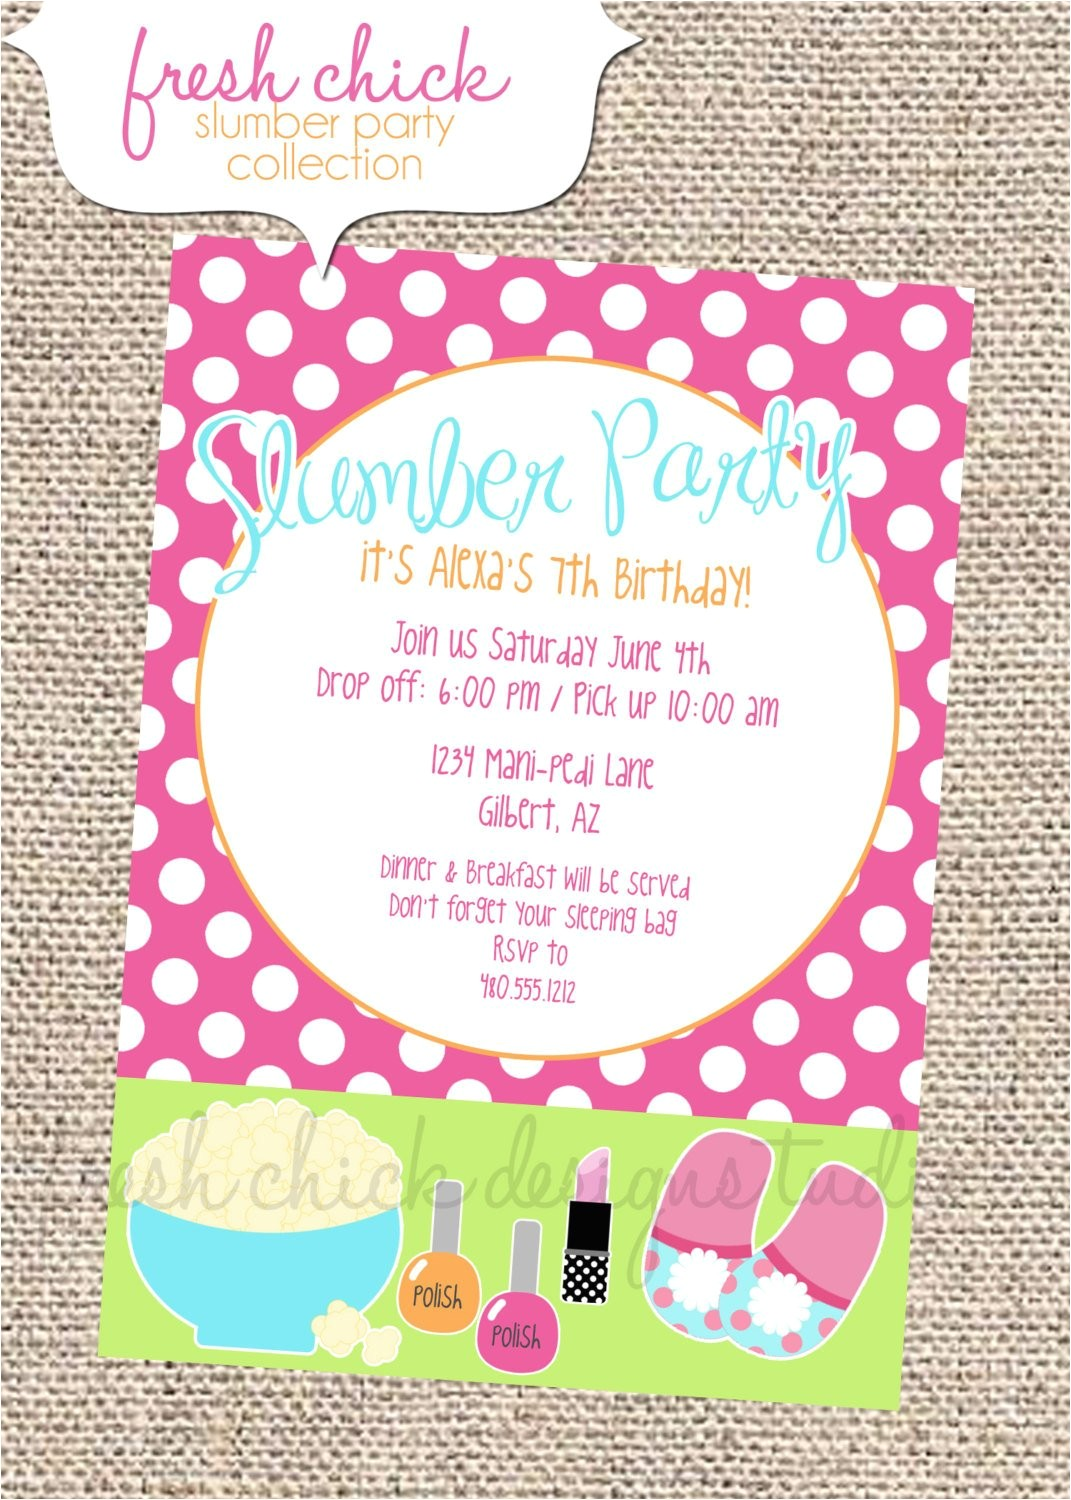 printable party invitation slumber party